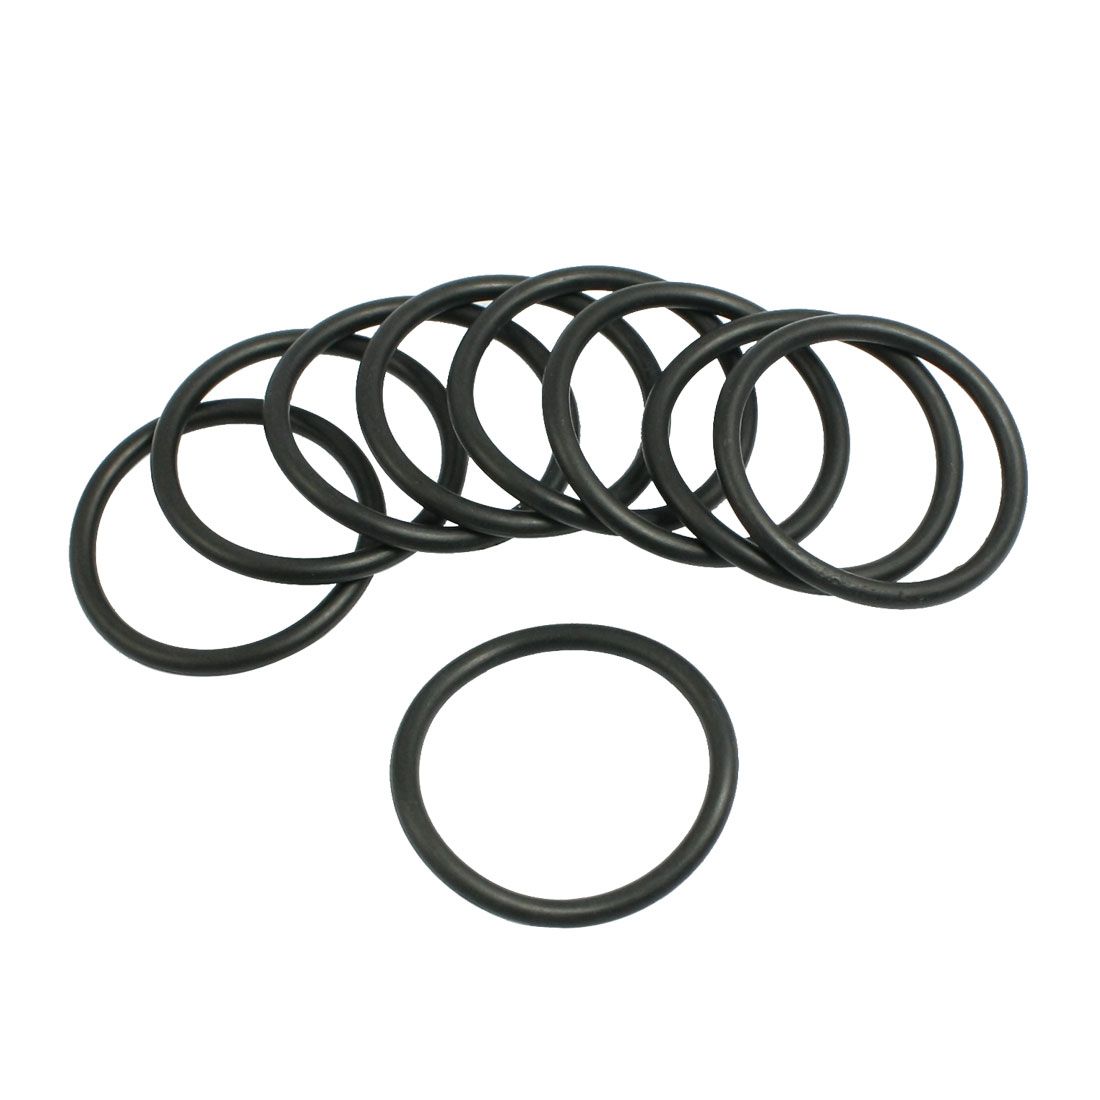 10 Pcs 26.5mm x 2.65mm Black Silicone O Rings Oil Seals Gaskets